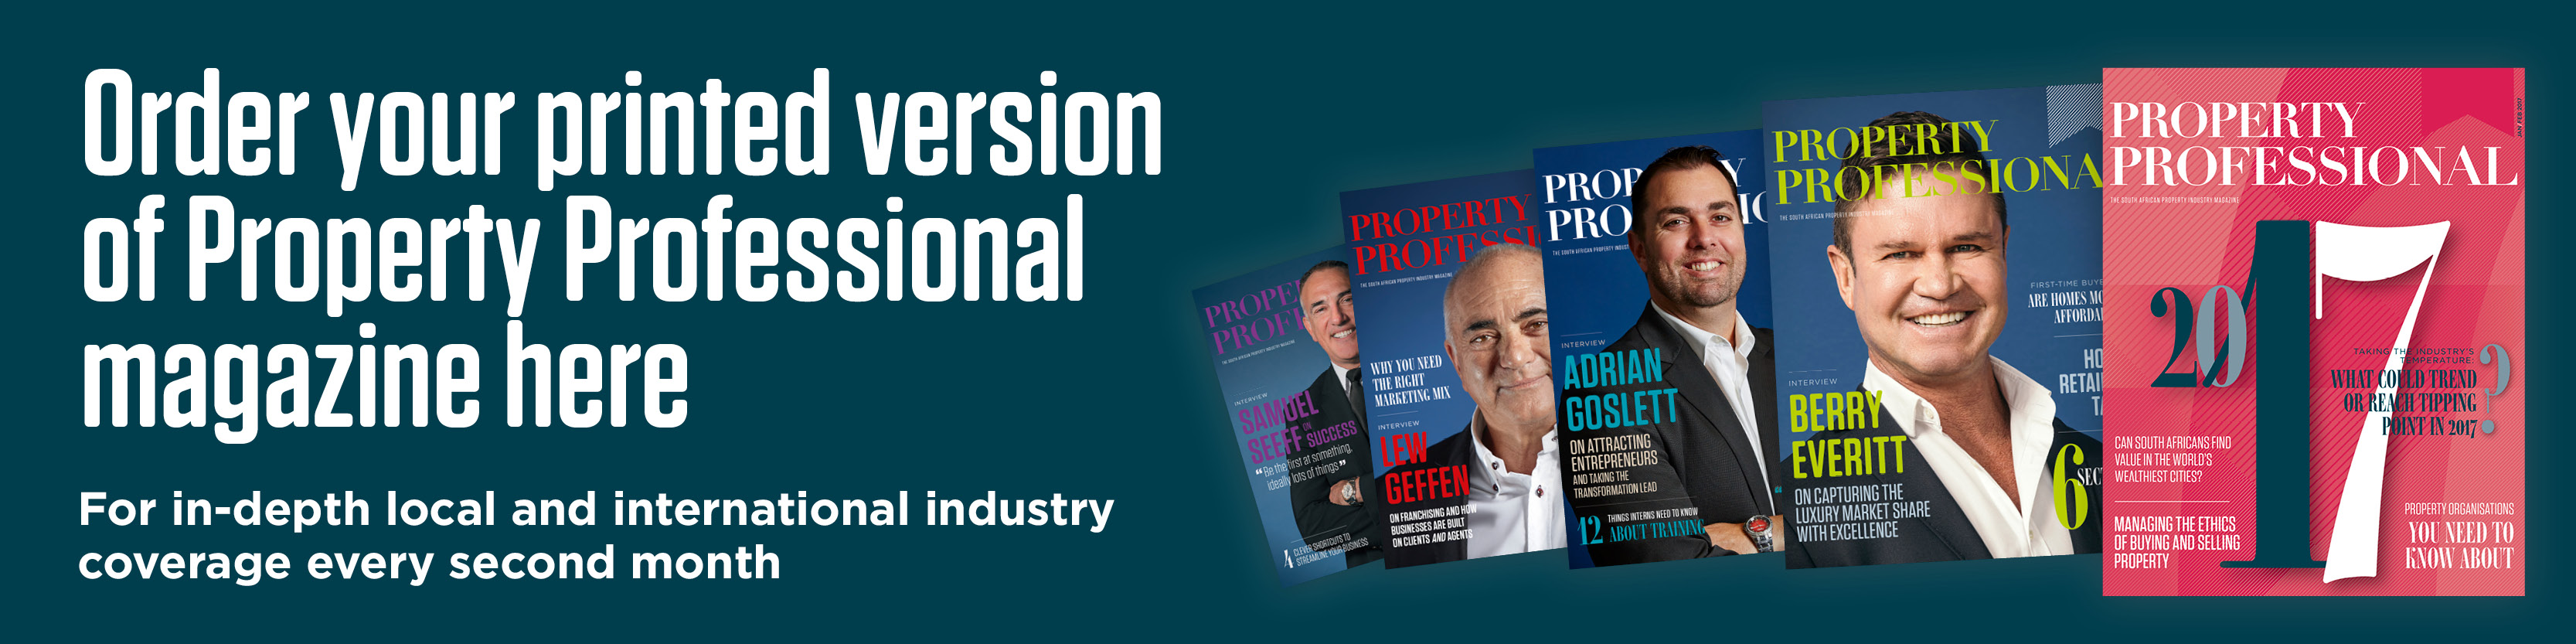 Subscribe to Property Professional magazine